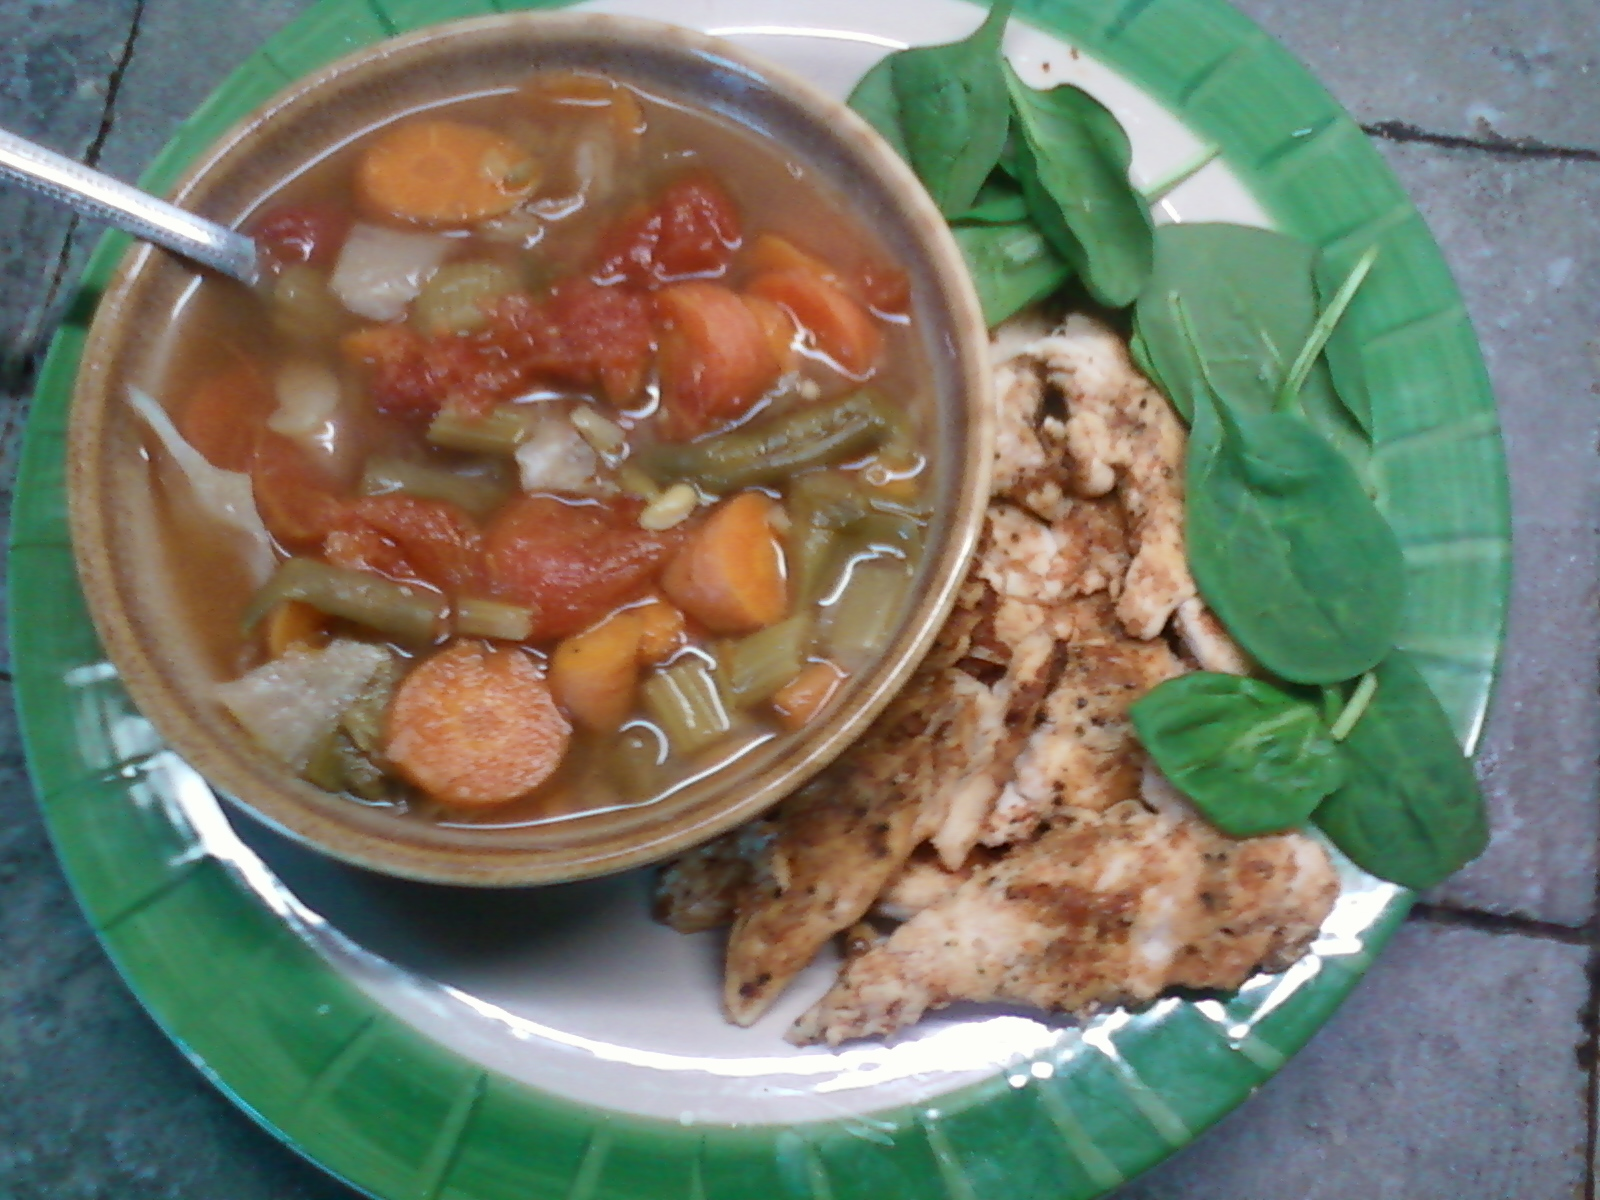 Sacred heart 7 day soup diet